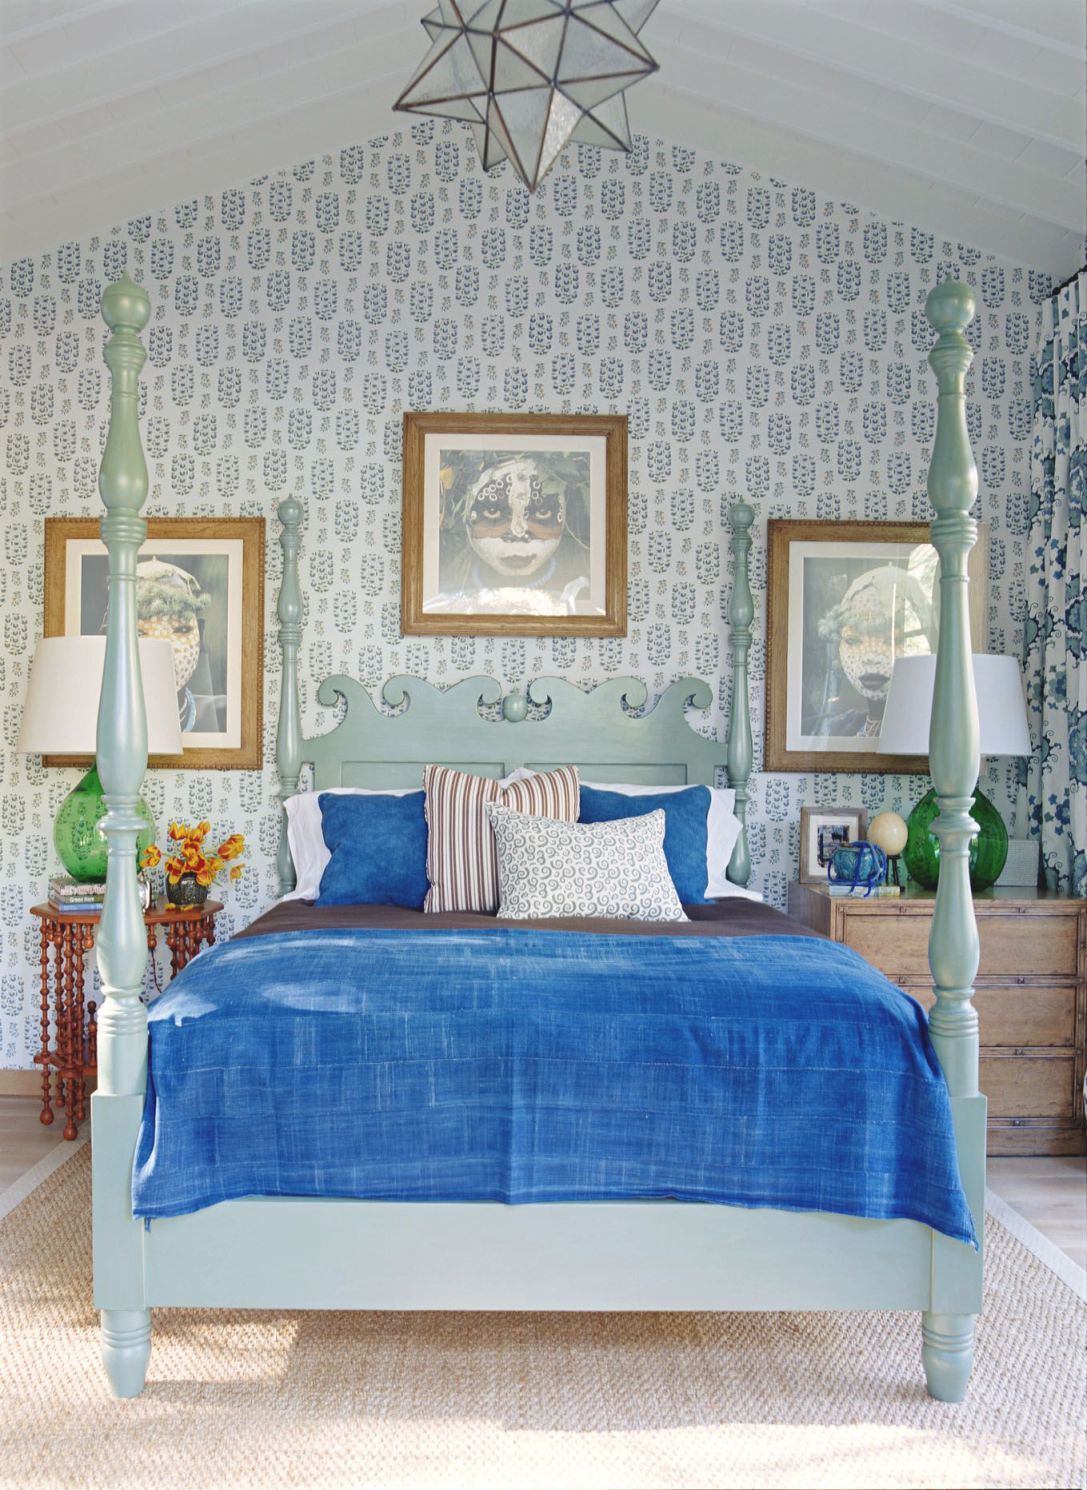 100+ Bedroom Decorating Ideas In 2020 – Designs For with Blue And Green Bedroom Decorating Ideas